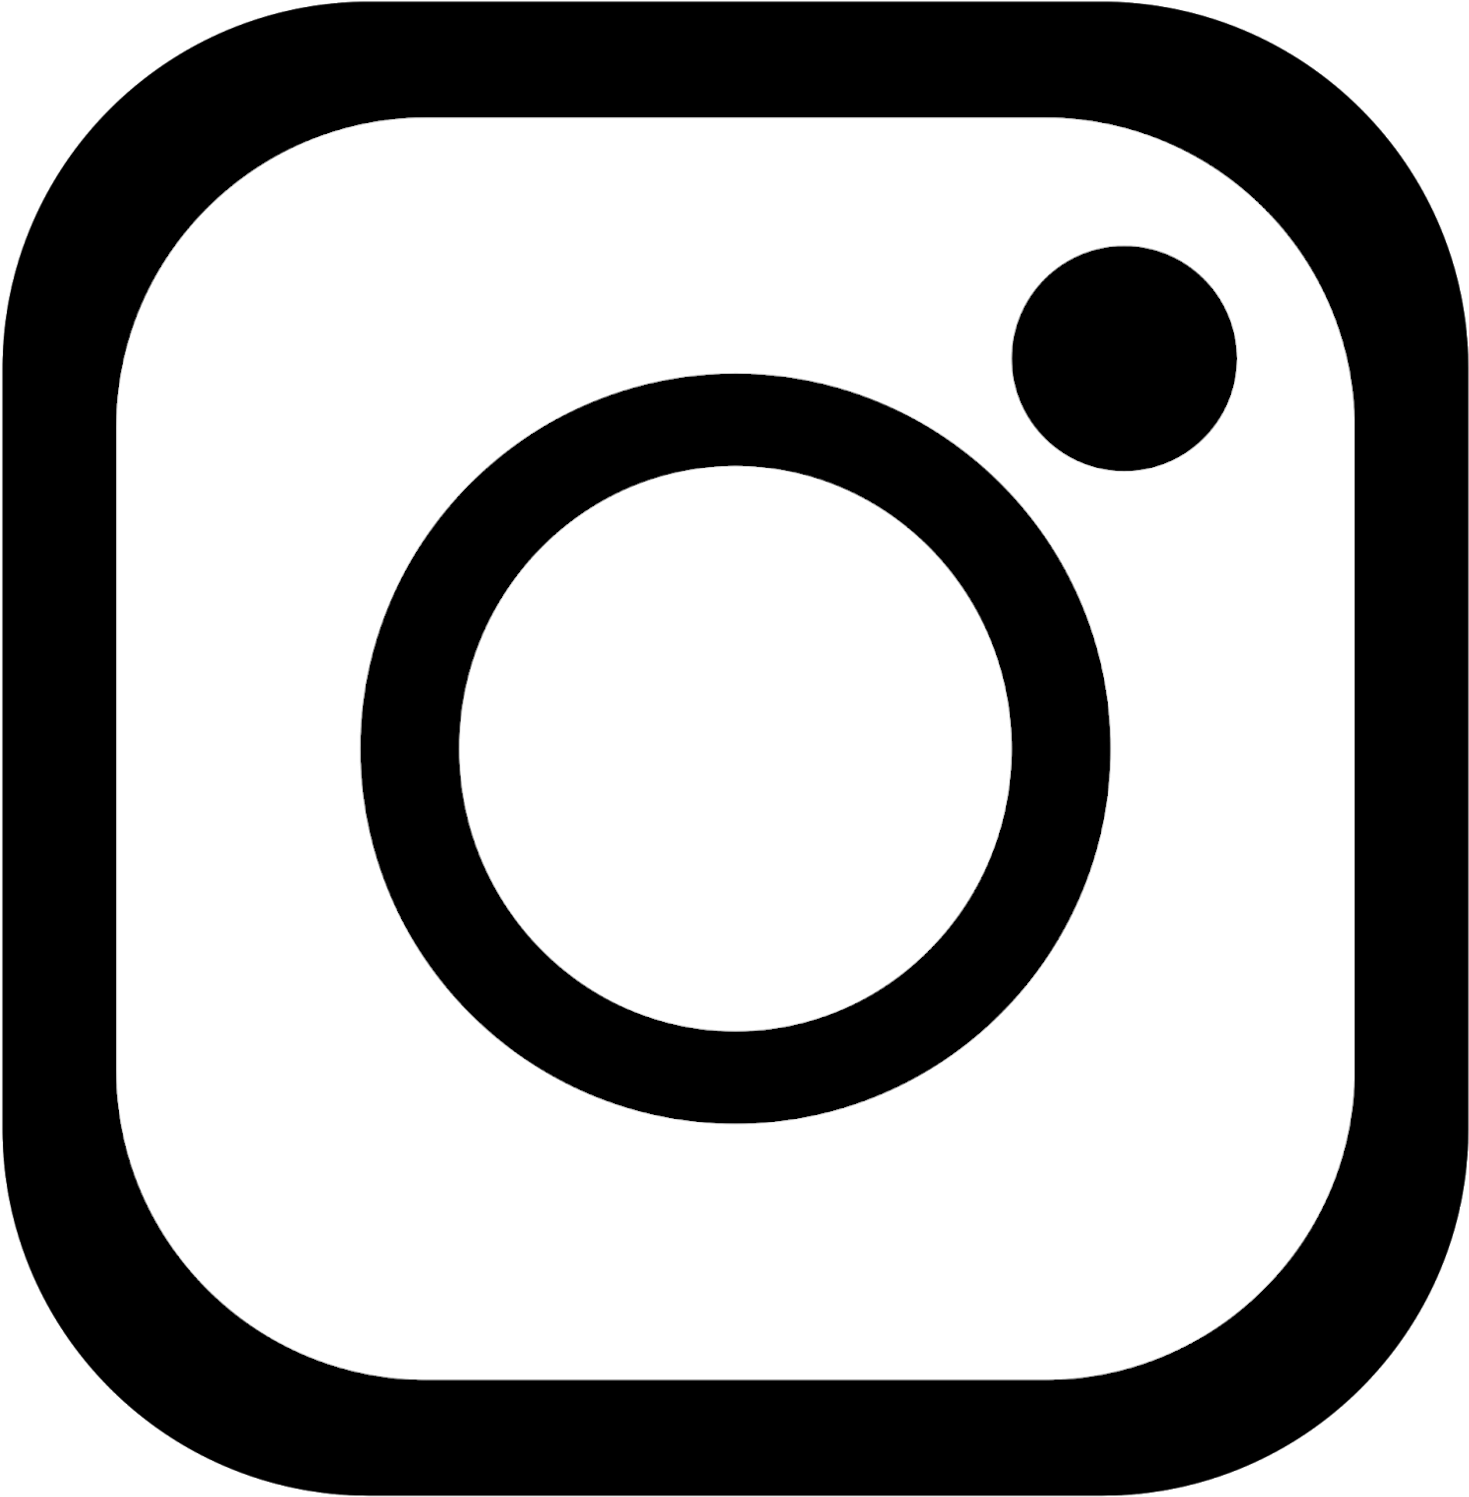 Instagram Logo Black Borders Png Transparent Background - Instagram Logo Black With Transparent Background (1576x1576), Png Download